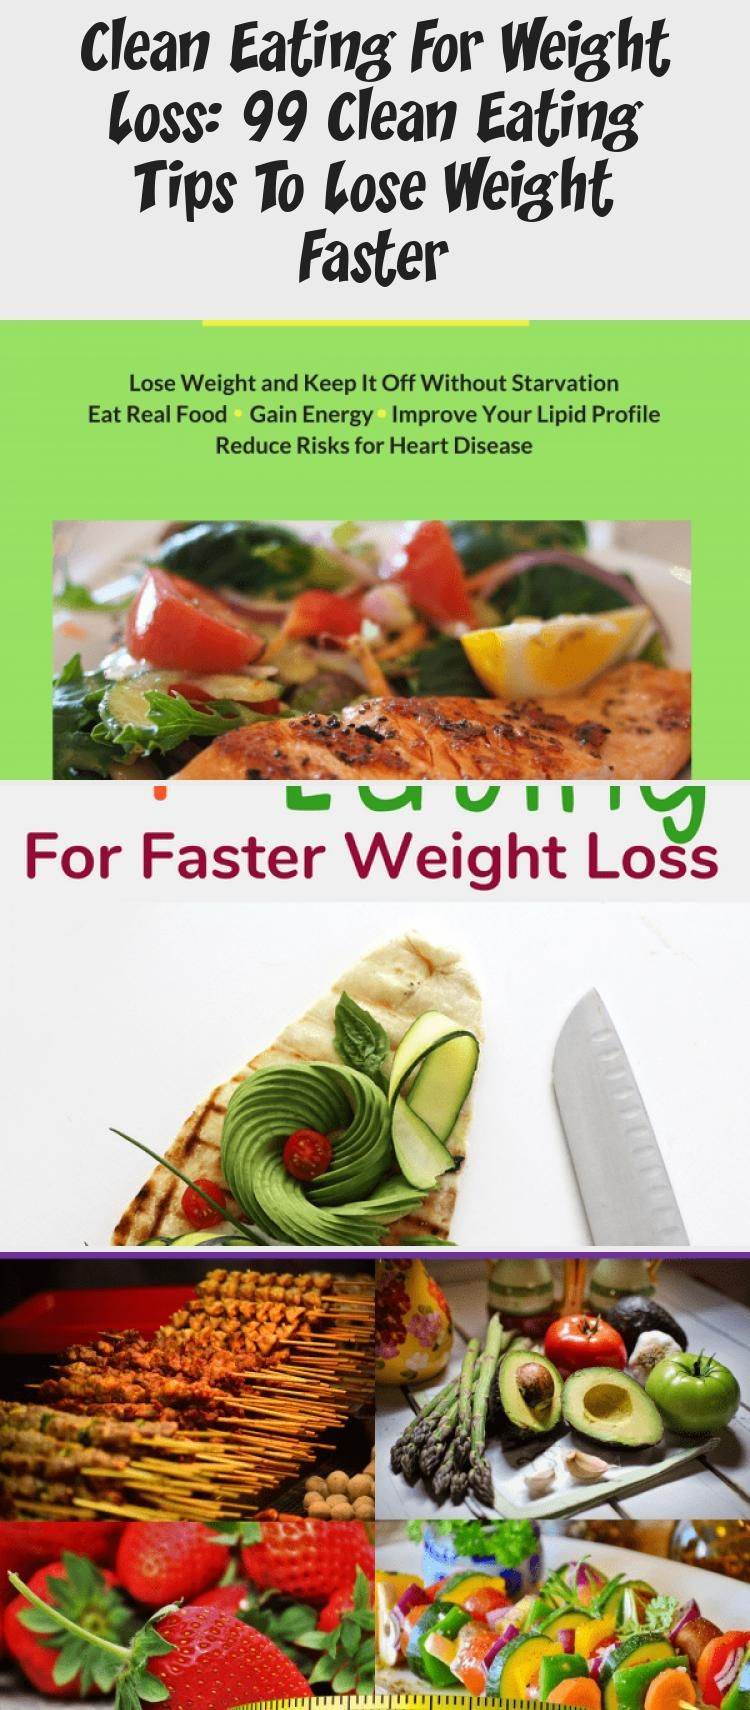 Clean Eating For Weight Loss: 99 Clean Eating Tips To Lose Weight Faster - health and diet fitness -...